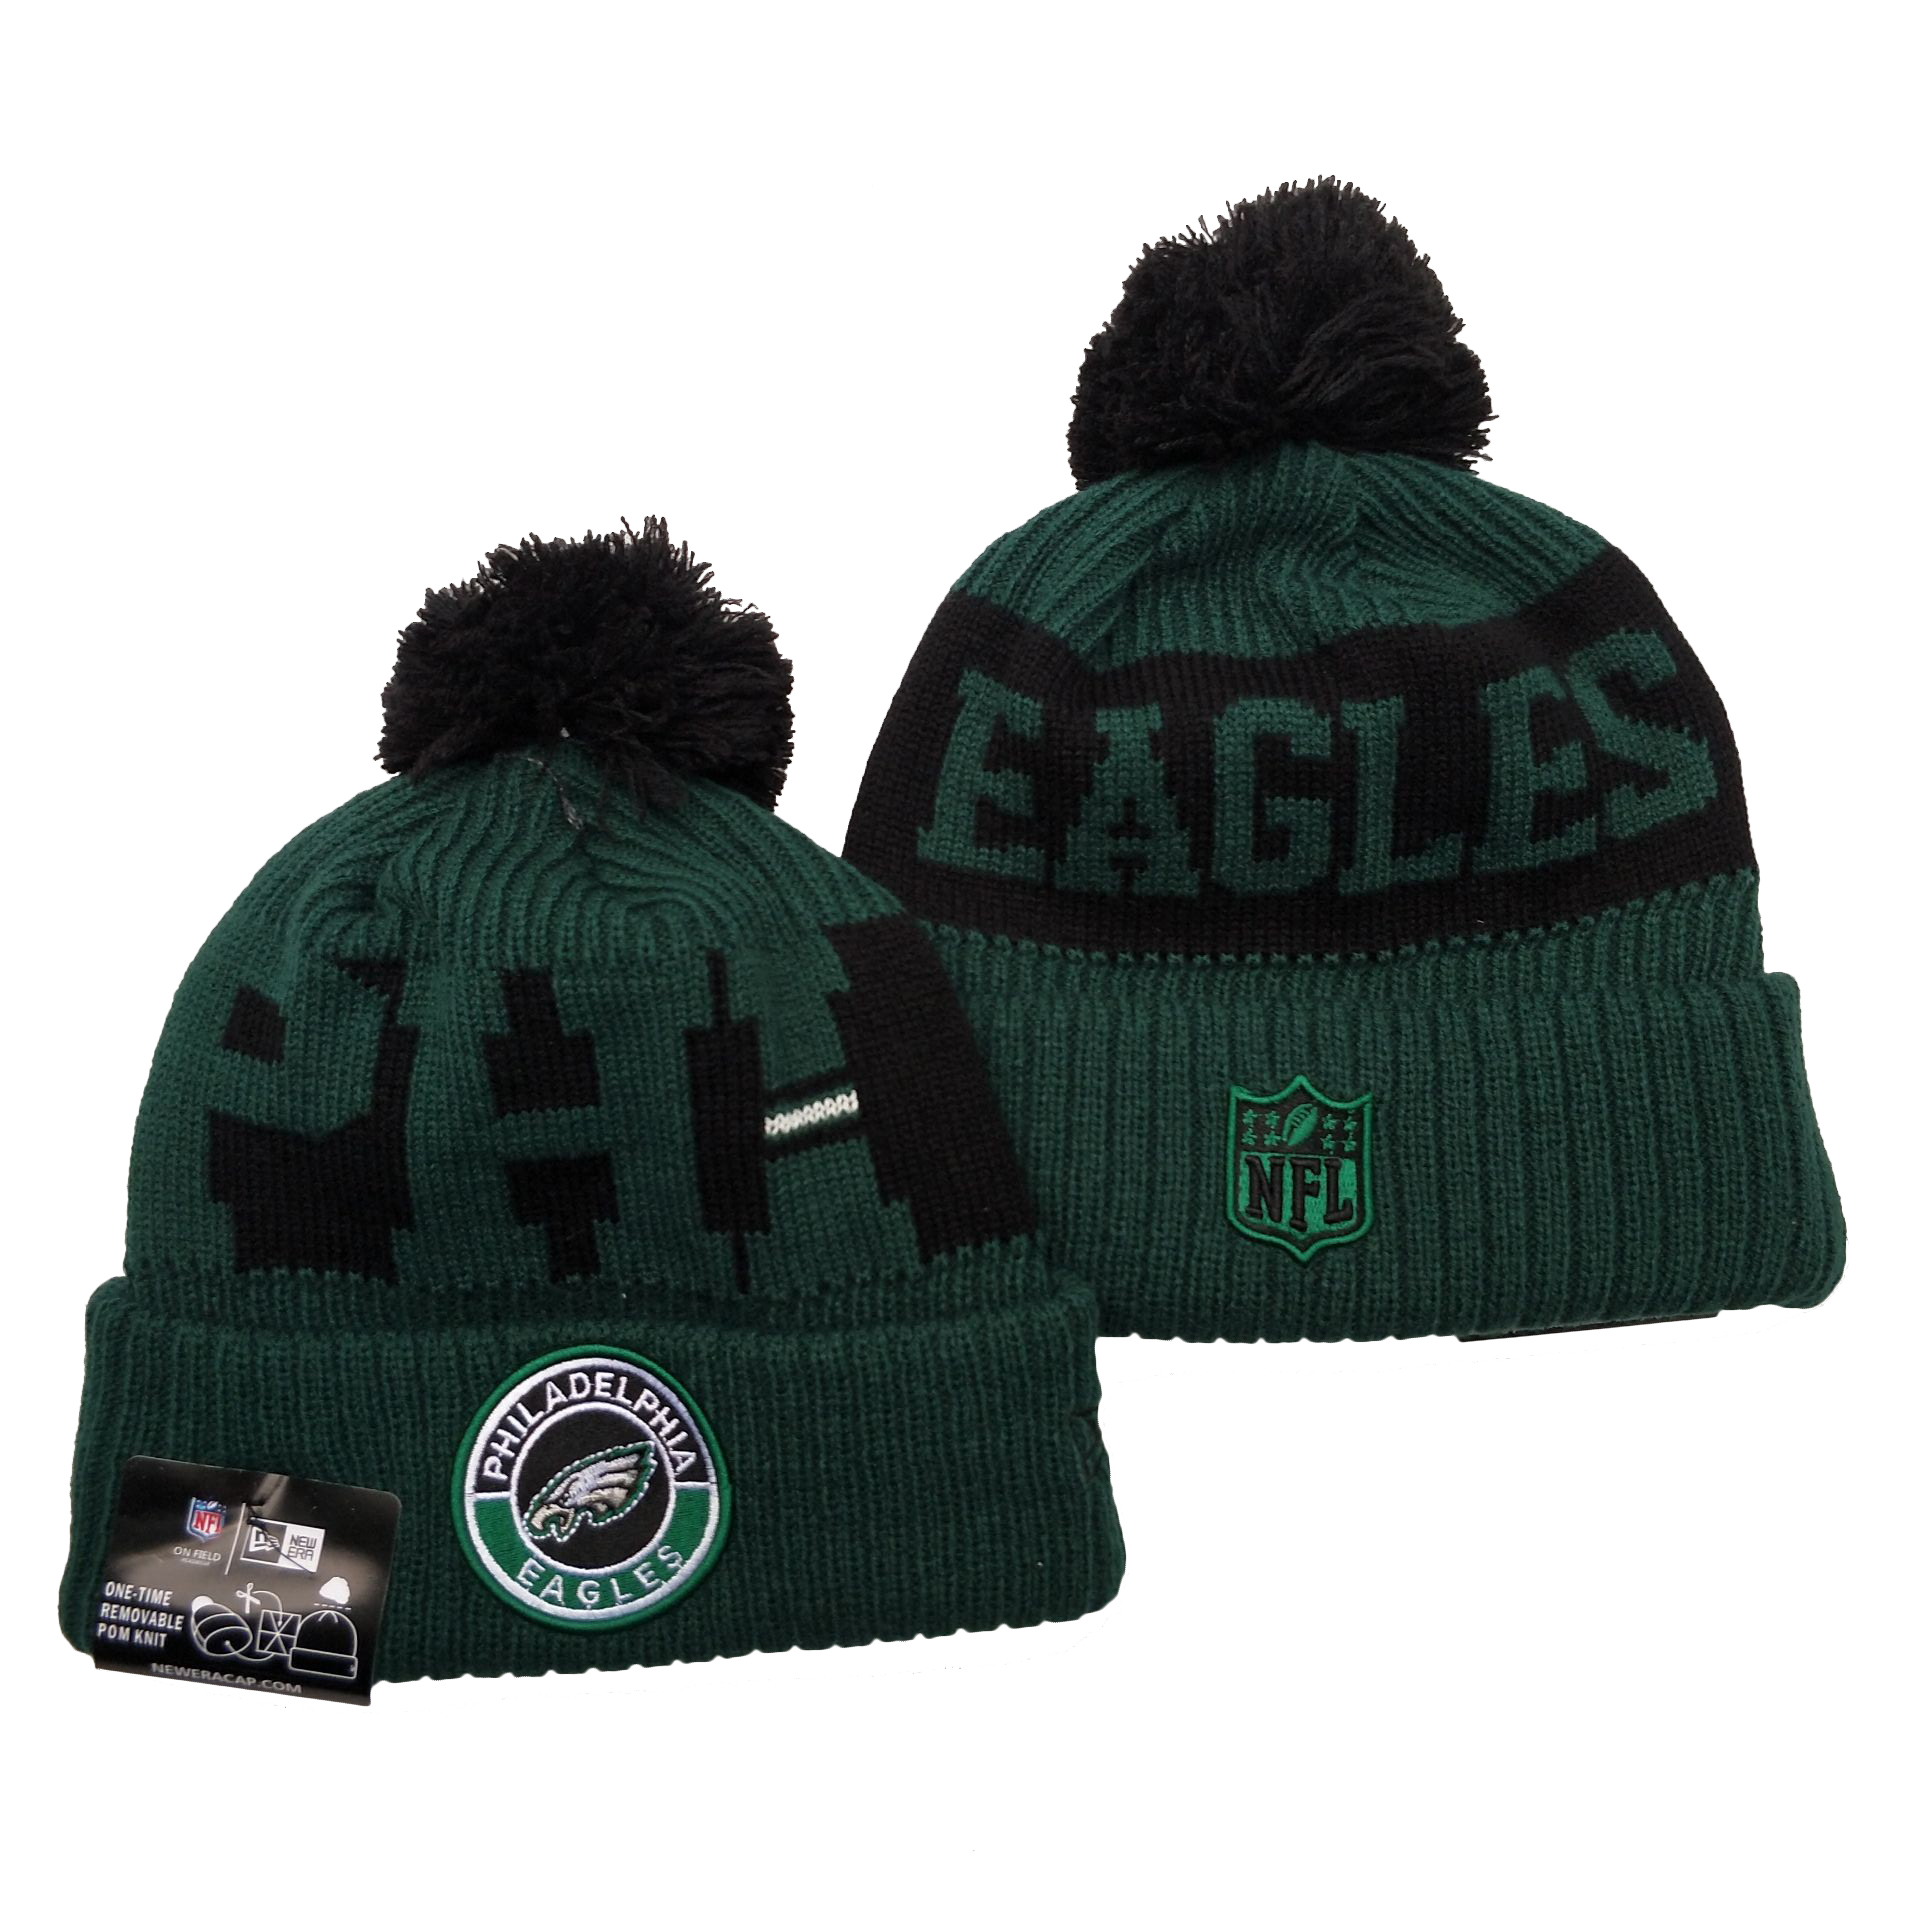 Eagles Team Logo Green 2020 NFL Sideline Pom Cuffed Knit Hat YD